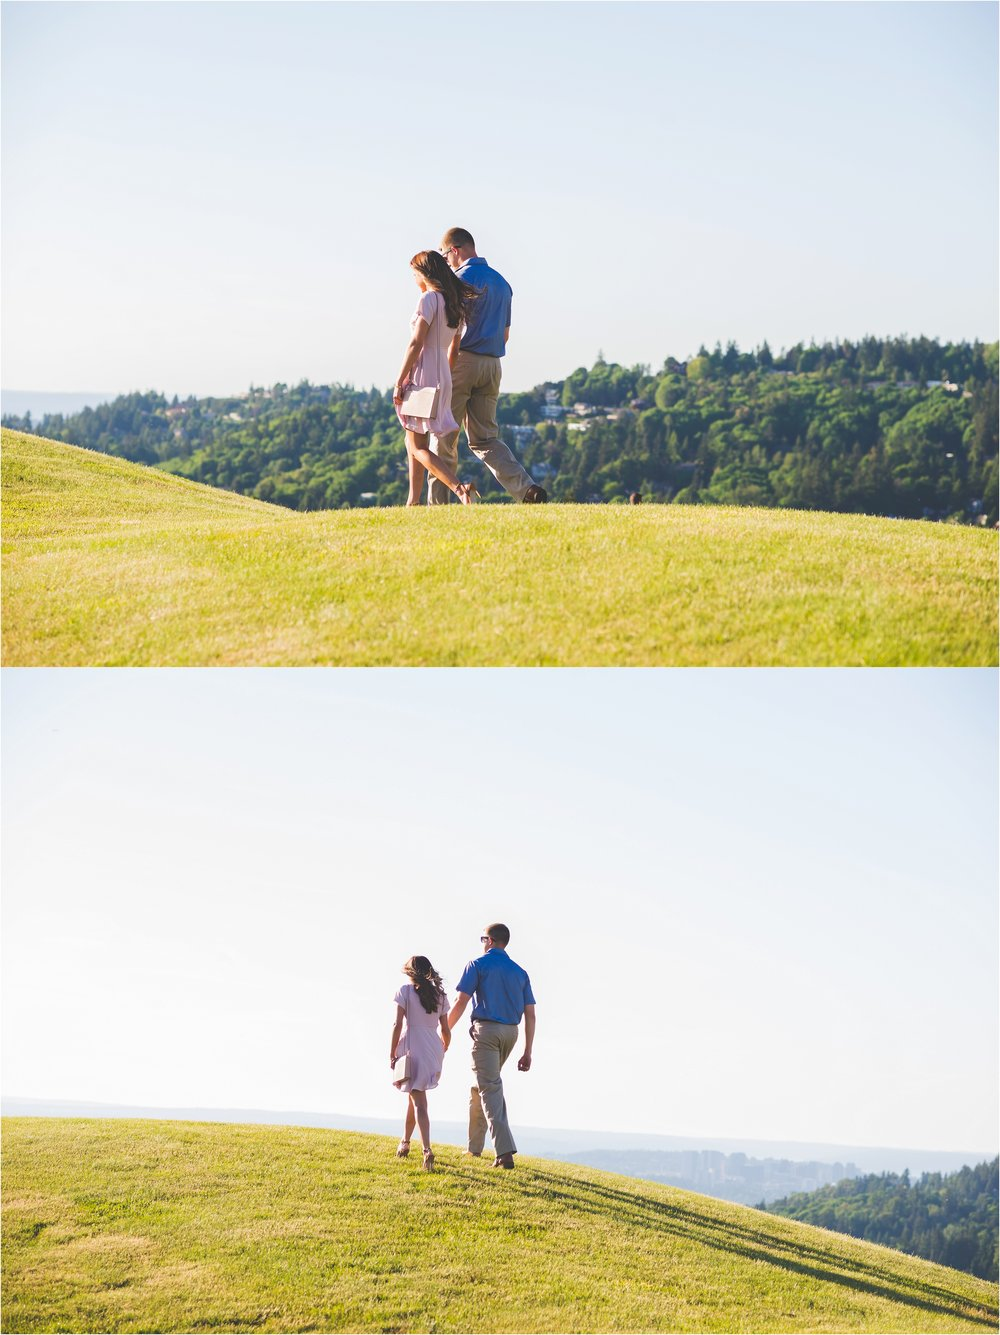 newcastle-golf-club-proposal-jannicka-mayte-seattle-washington-engagement-wedding-photographer_0001.jpg